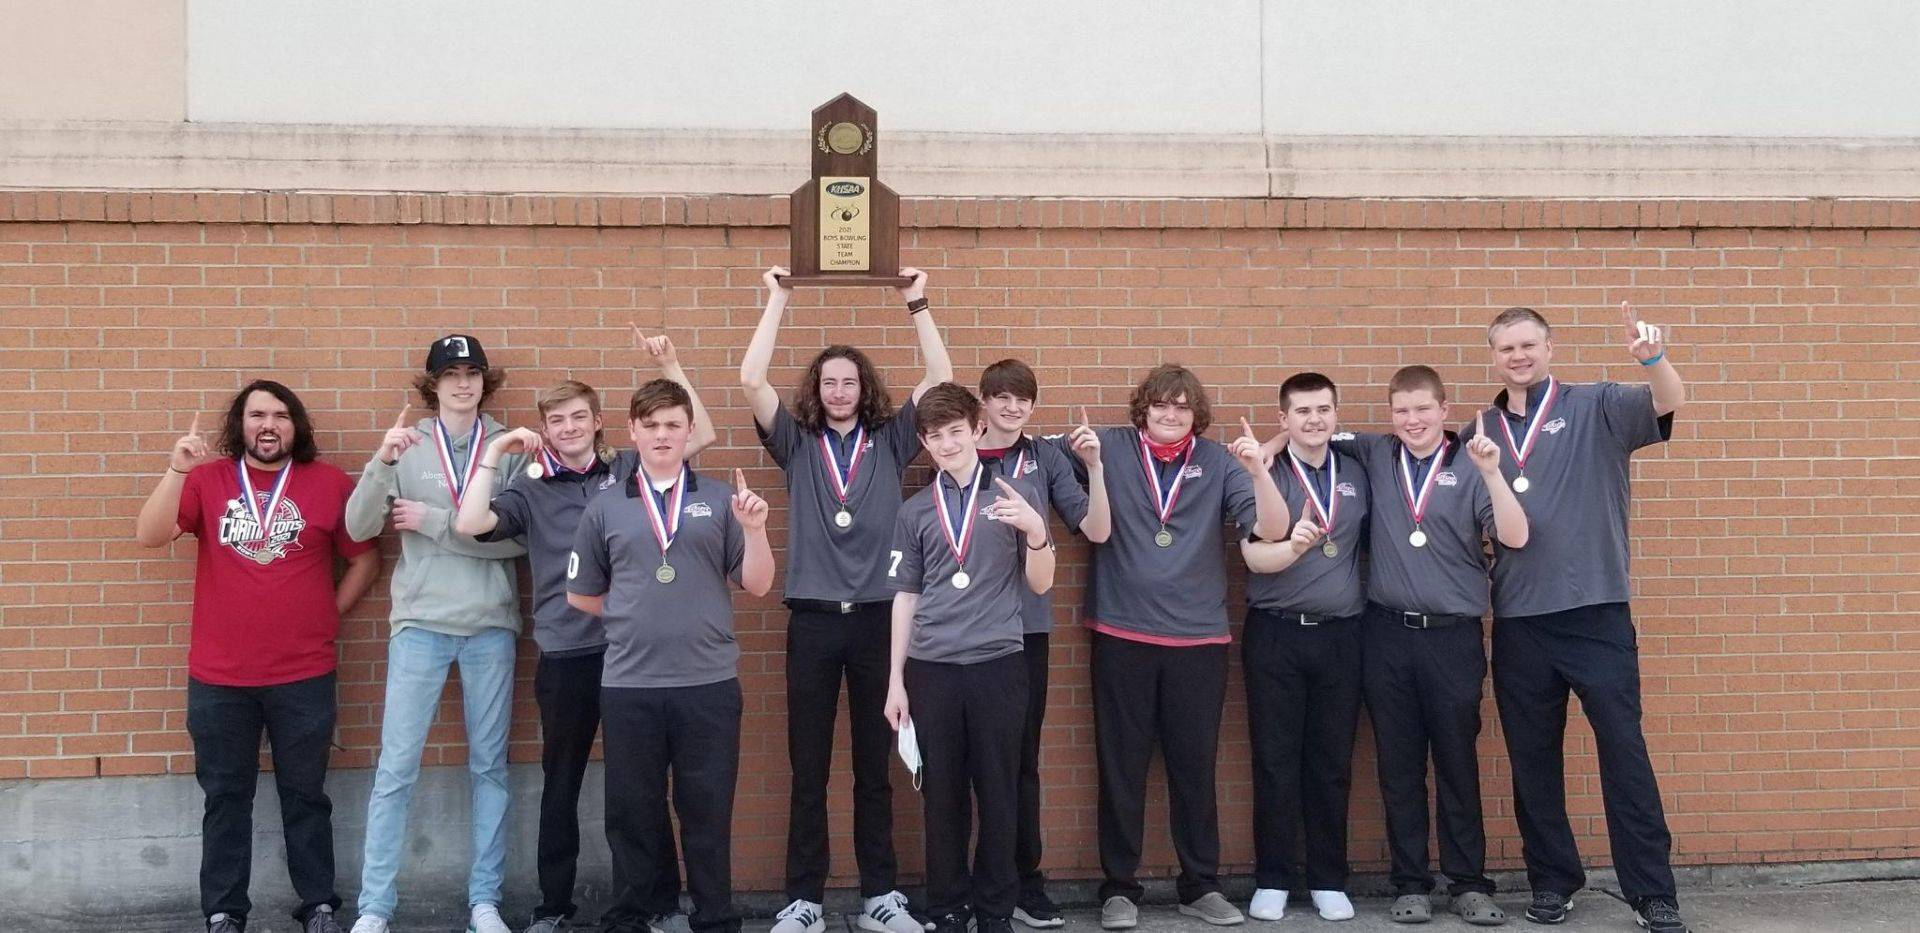 Mustangs Men's Bowling - 2021 KHSAA State Champions!